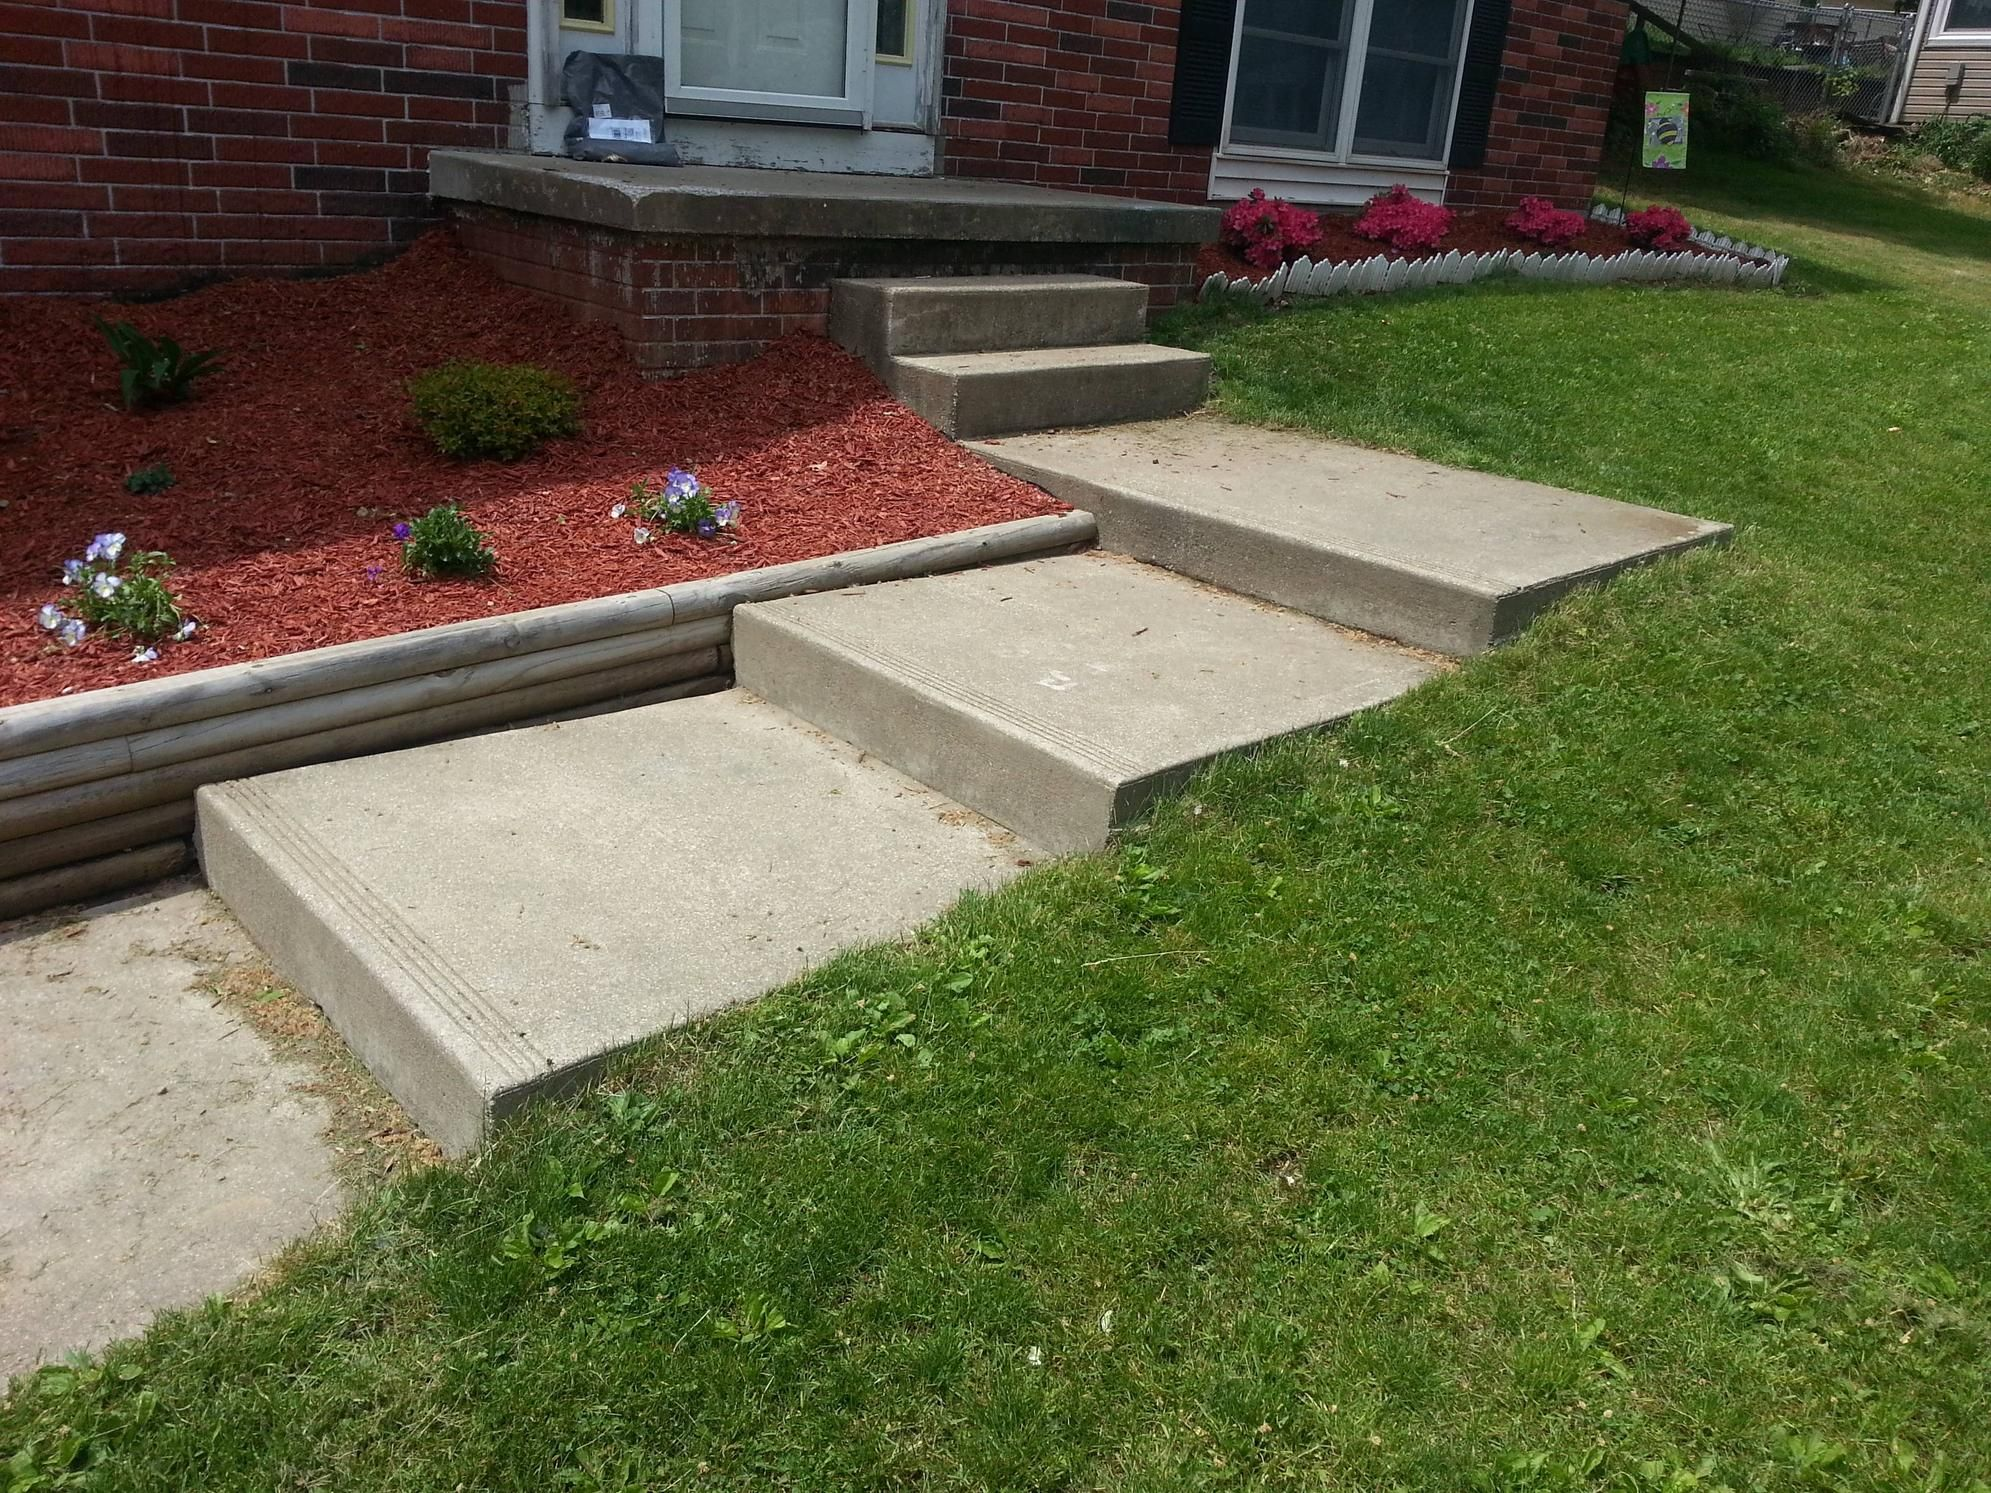 Beau Ideas For These Steps In My Front Yard : Landscaping